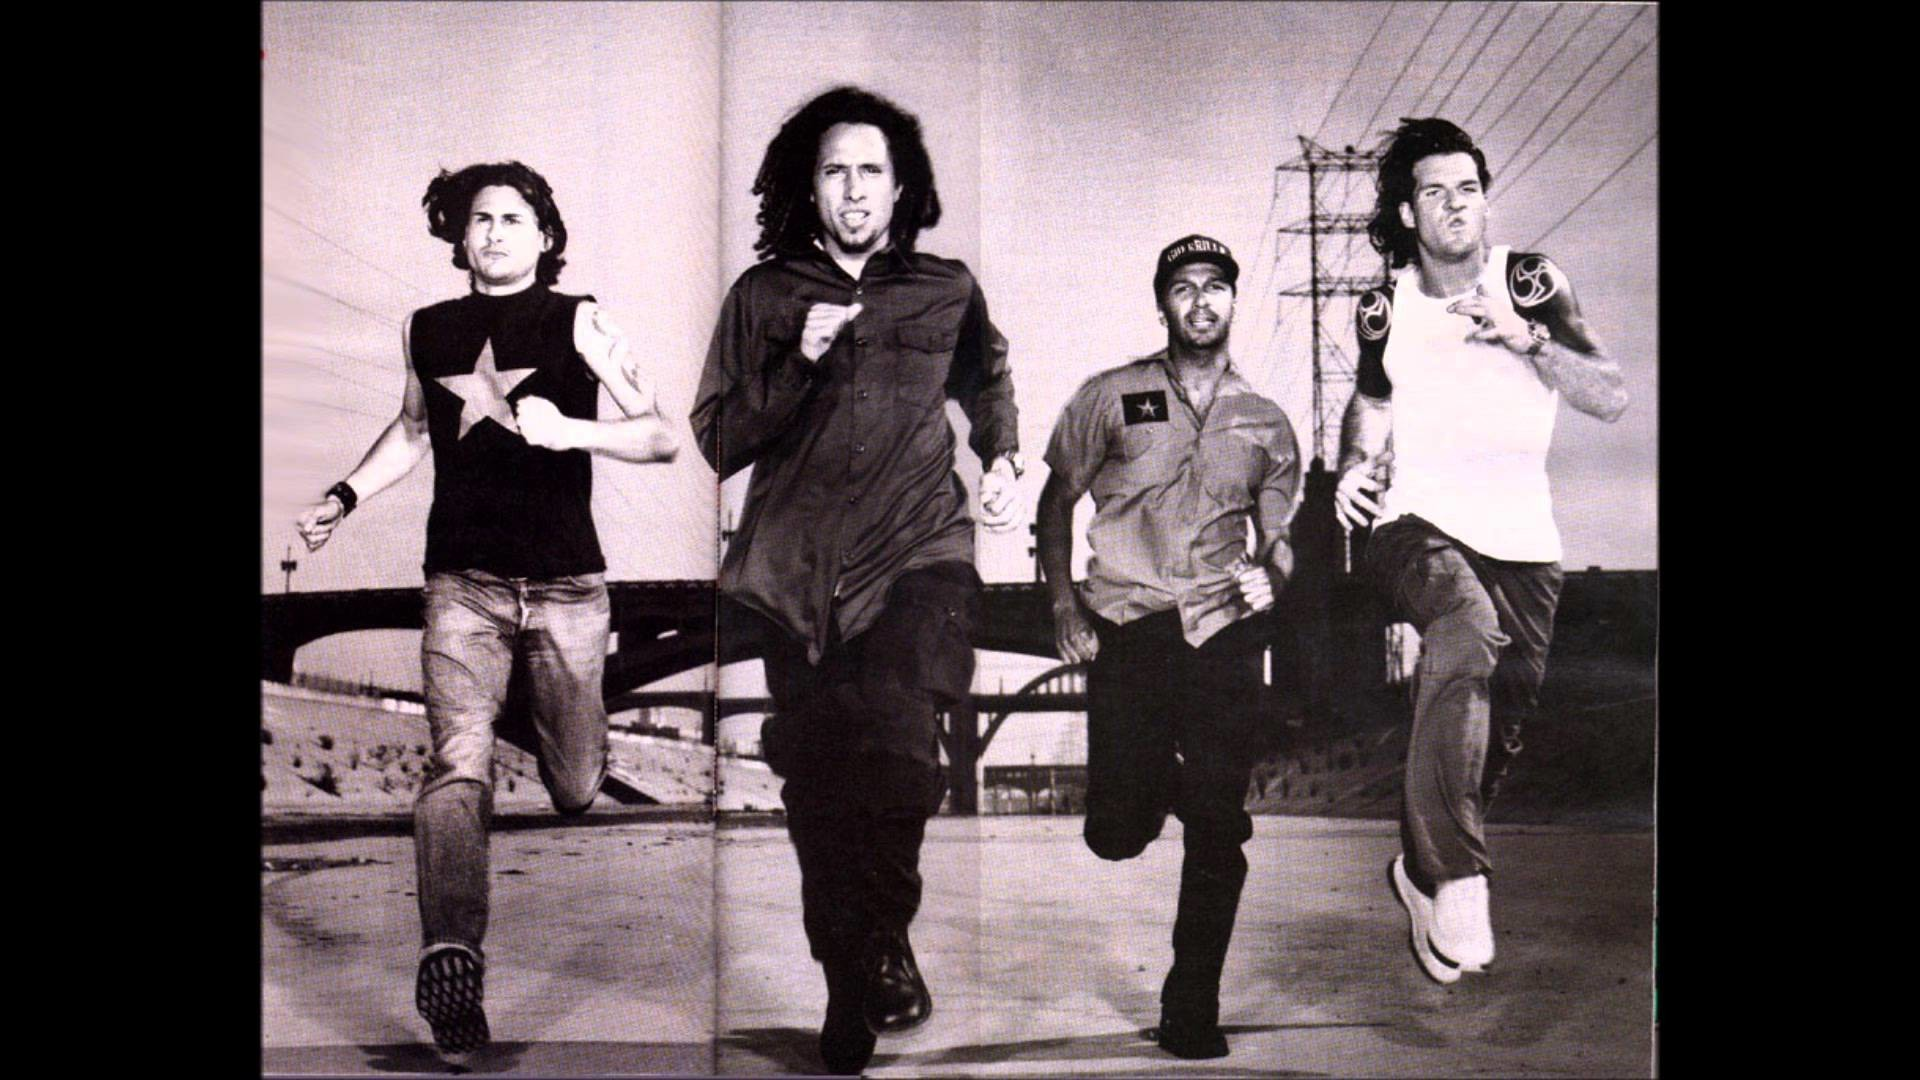 1920x1080 Images of Rage Against The Machine |